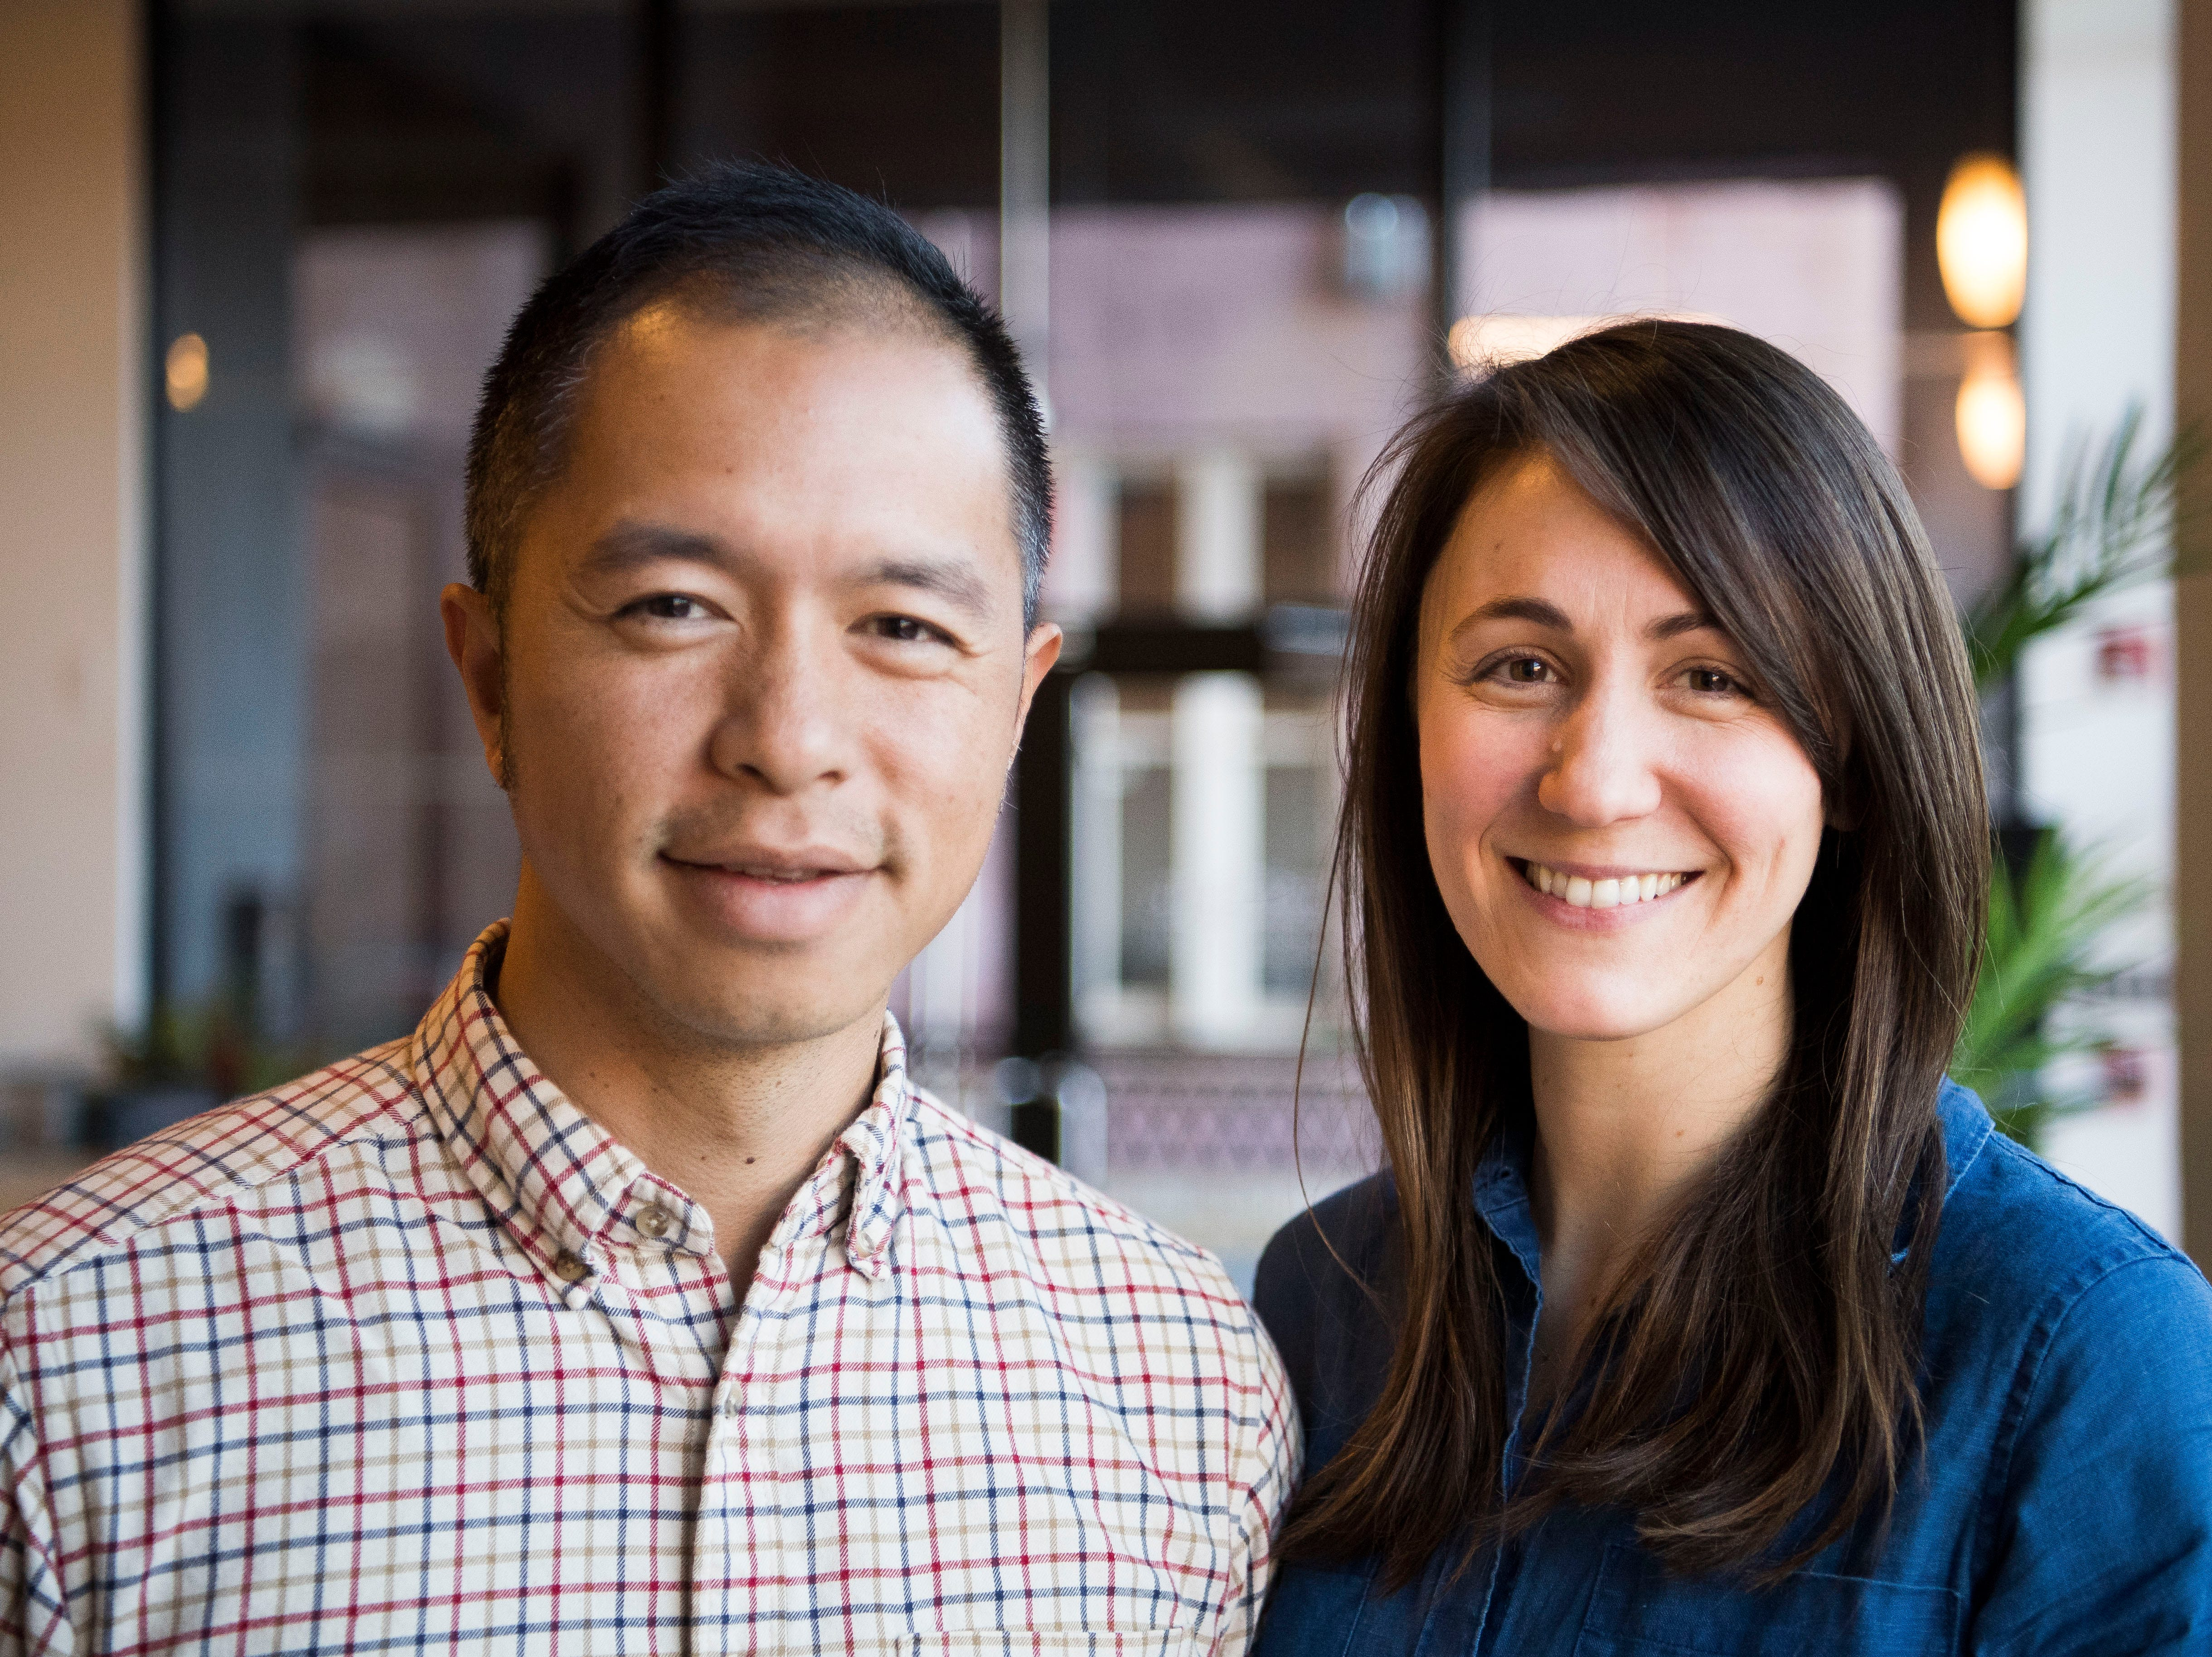 Kevin Ling and his wife Sydney Berry Ling, co-owners of Red Chair Workspaces, pose for a photo in the space Wednesday, Jan. 9, 2019.